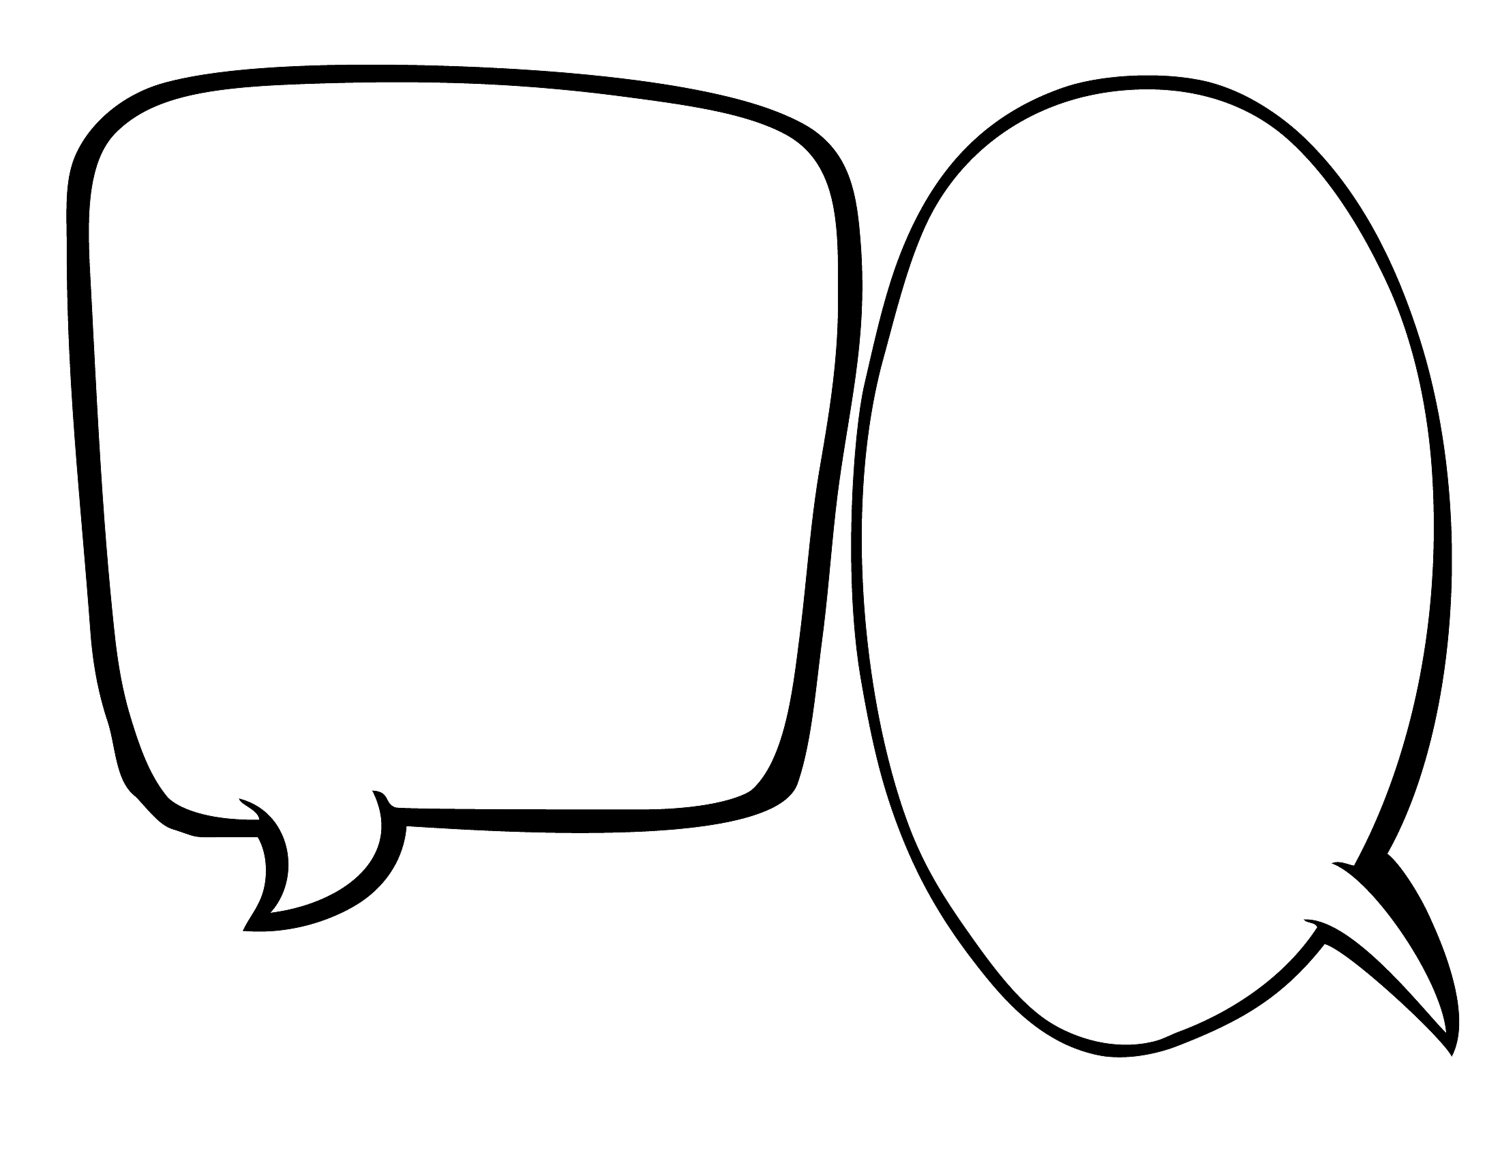 Blank conversation bubble clipart graphic black and white Free Speech Bubble Printable, Download Free Clip Art, Free Clip Art ... graphic black and white